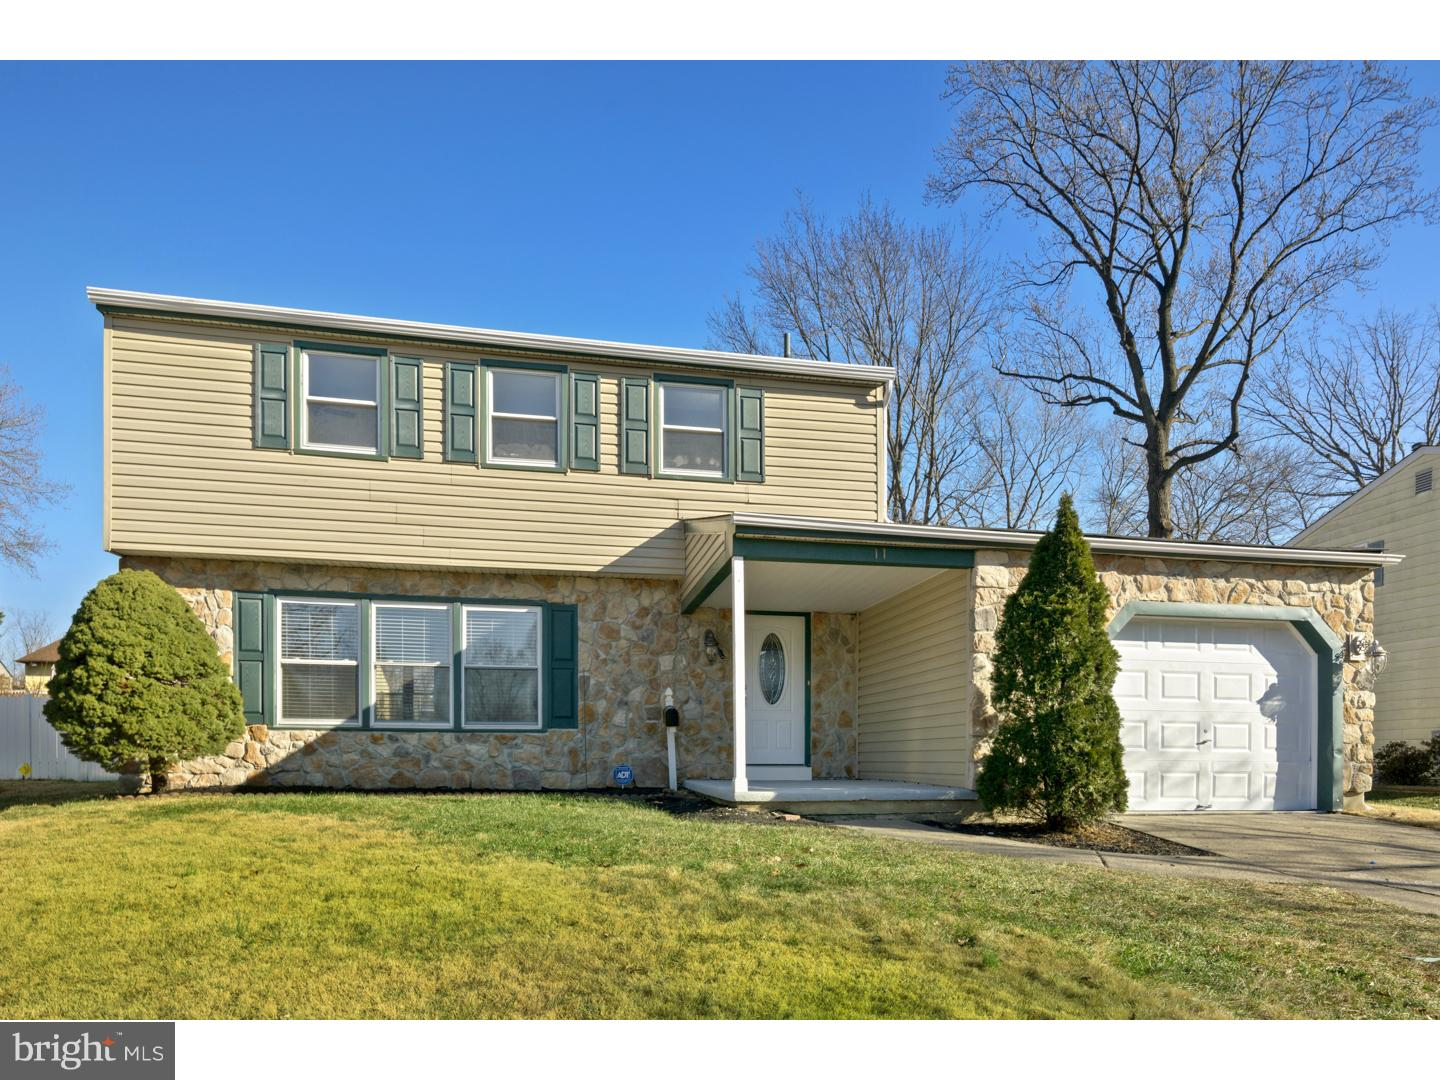 Single Family Home for Sale at 11 GRANT Drive Clementon, New Jersey 08021 United States